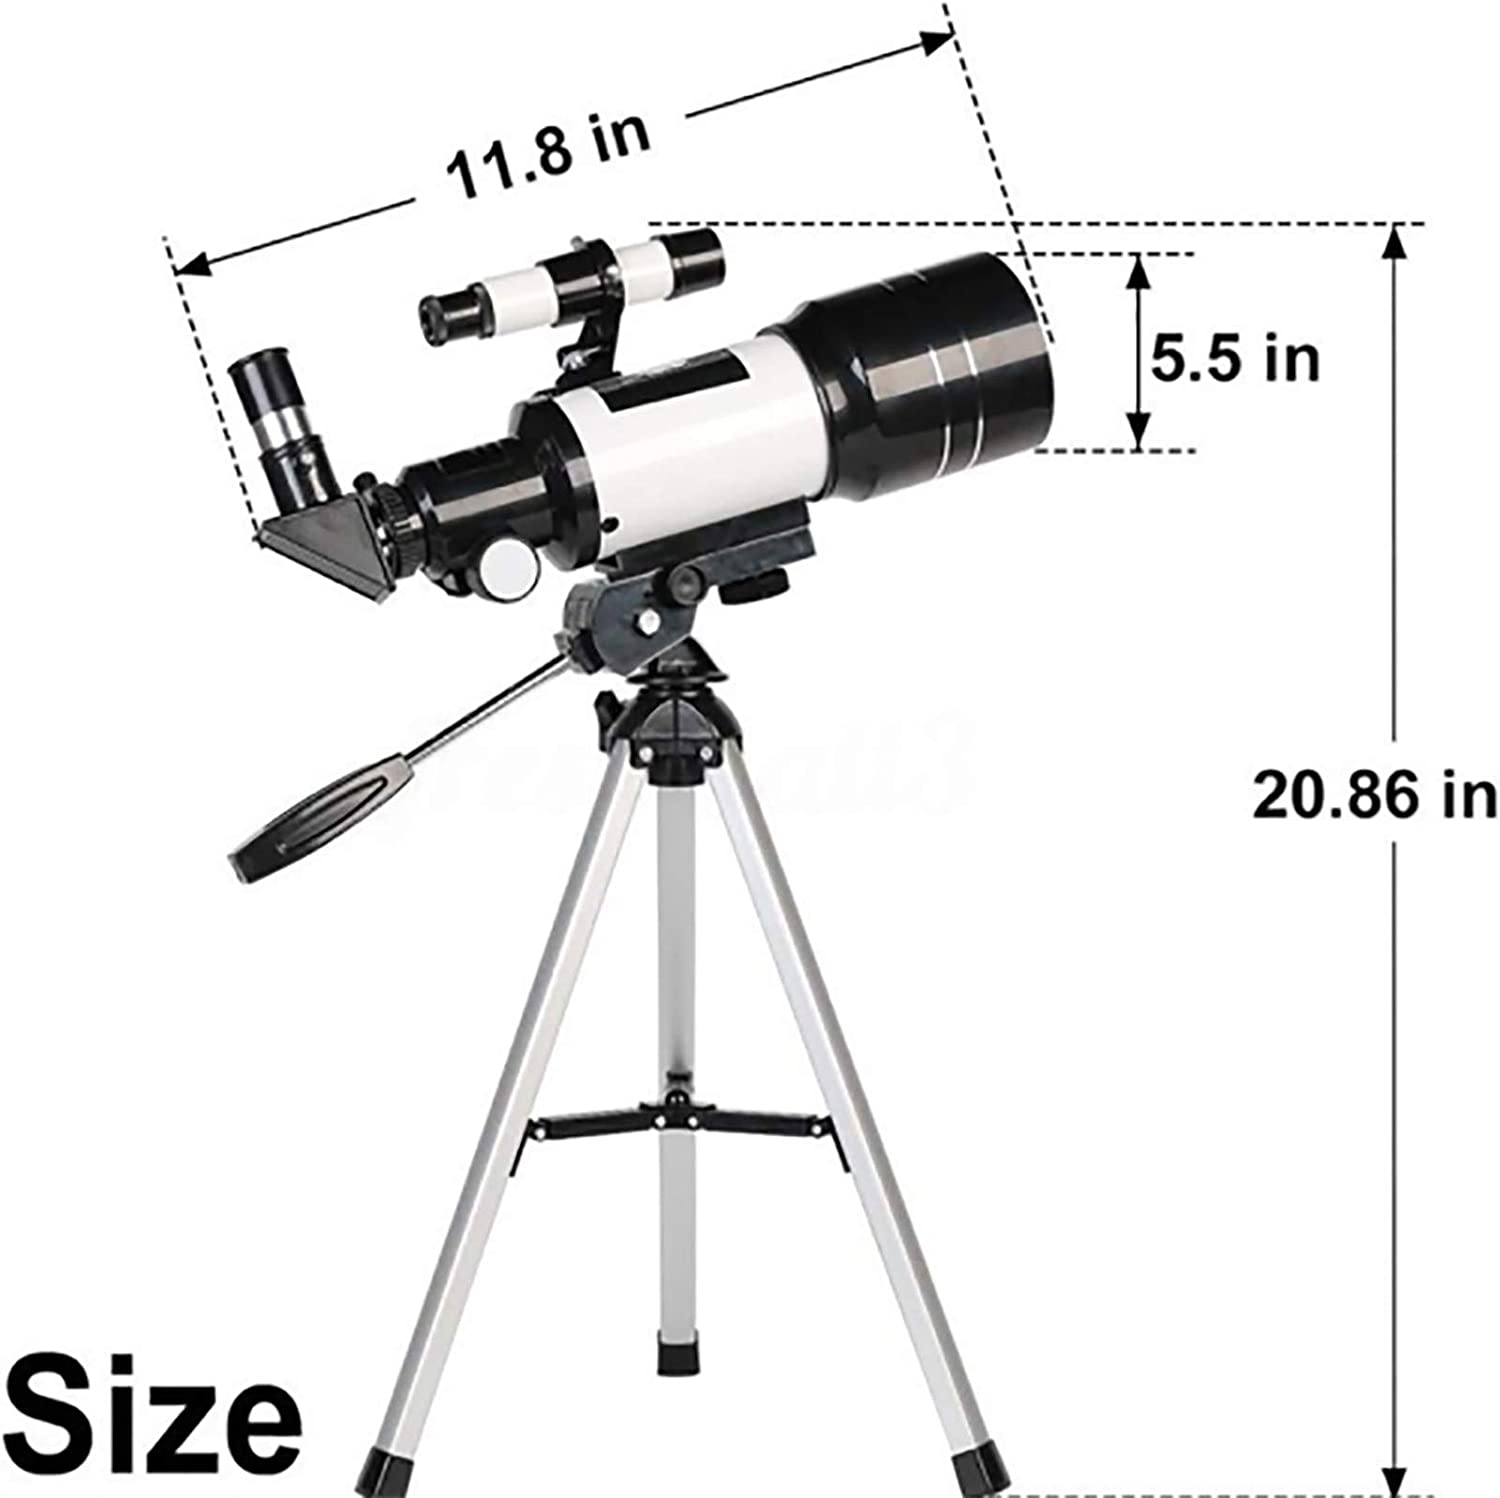 Inforin Telescopes for Adults High Definition Telescope Telescopes for Adults Astronomy Space Telescope Telescope for Adults Telescope for Adults with Finder Scope /& Tripod for Stargazing T1J6